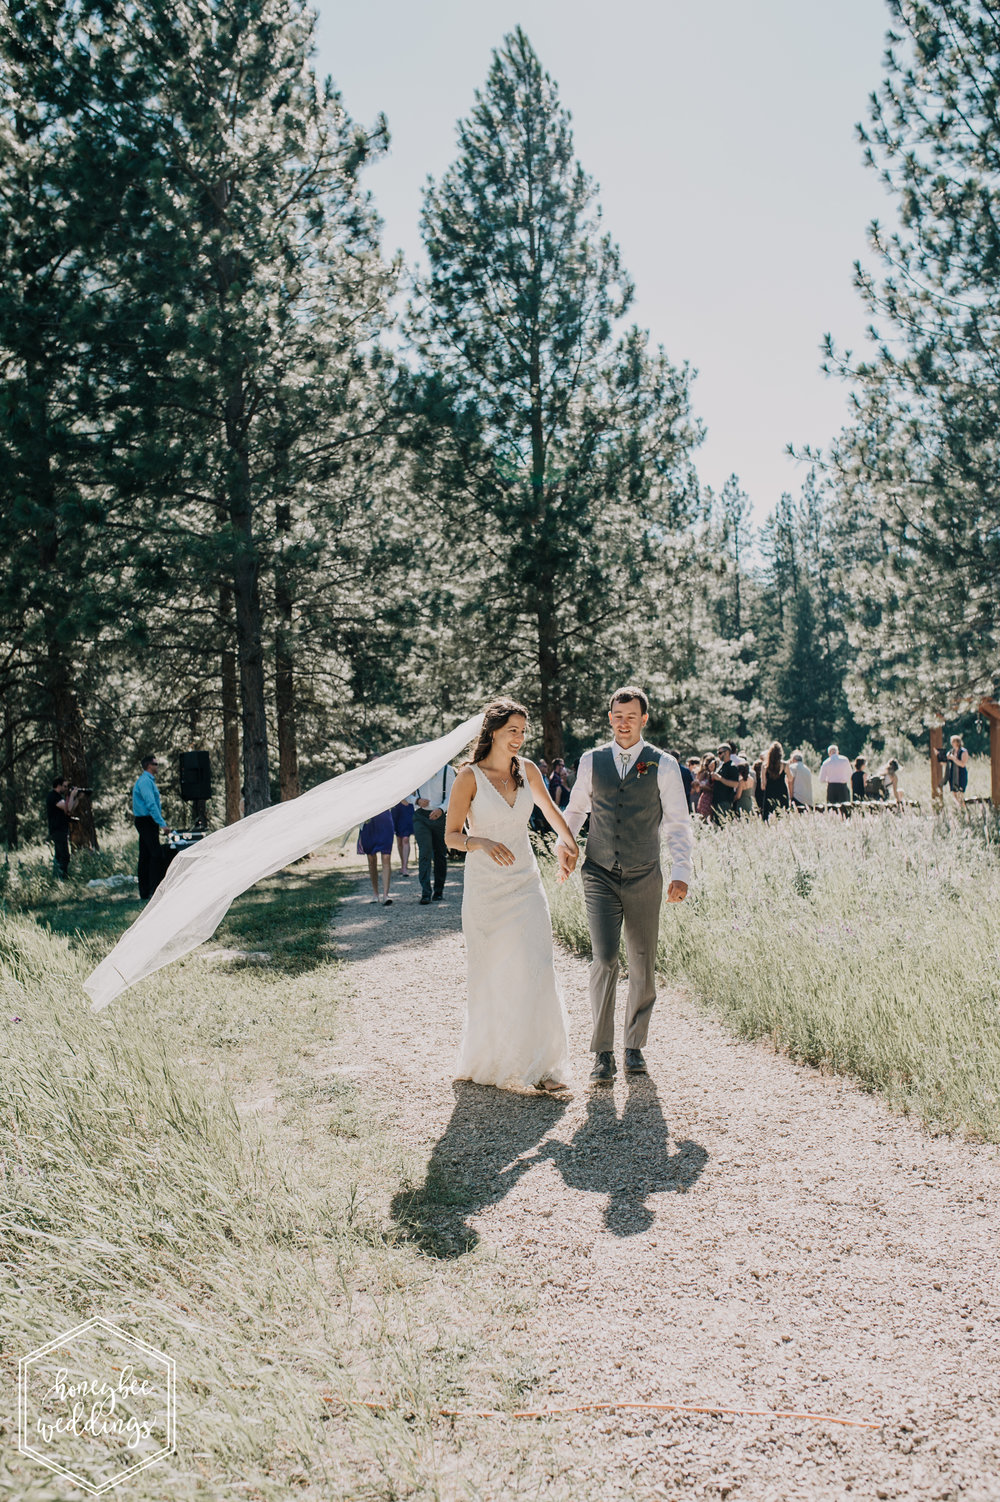 380 White Raven Wedding_Montana Wedding Photographer_Honeybee Weddings_ Meghan Maloney + Arza Hammond 2018-0264-2.jpg